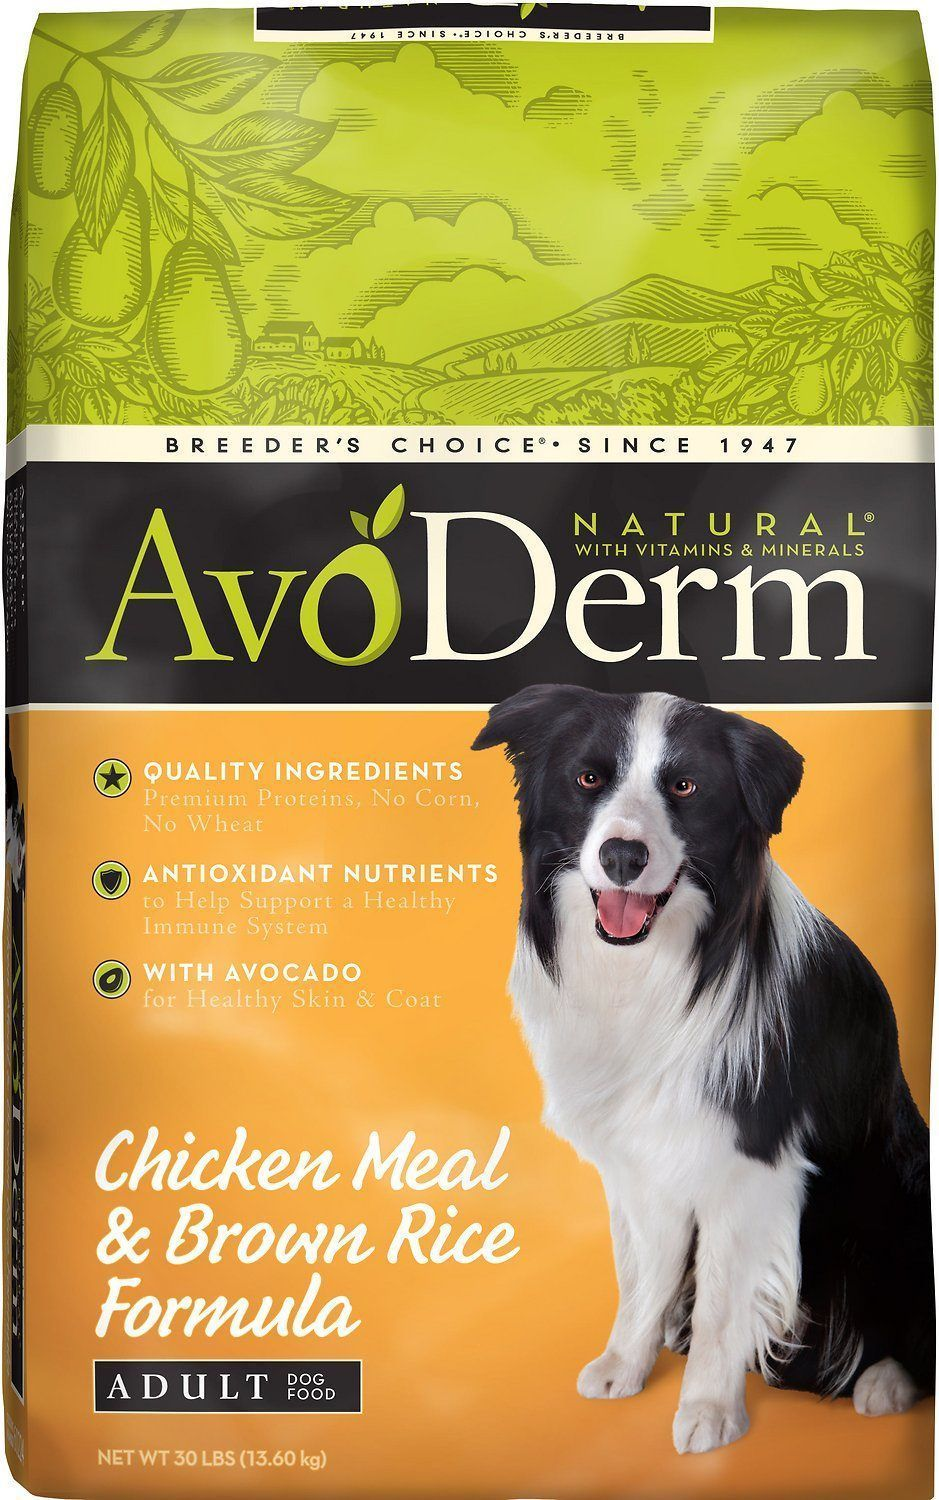 Best Dog Food For Weight Loss Dogfoodonline Dog Supplies